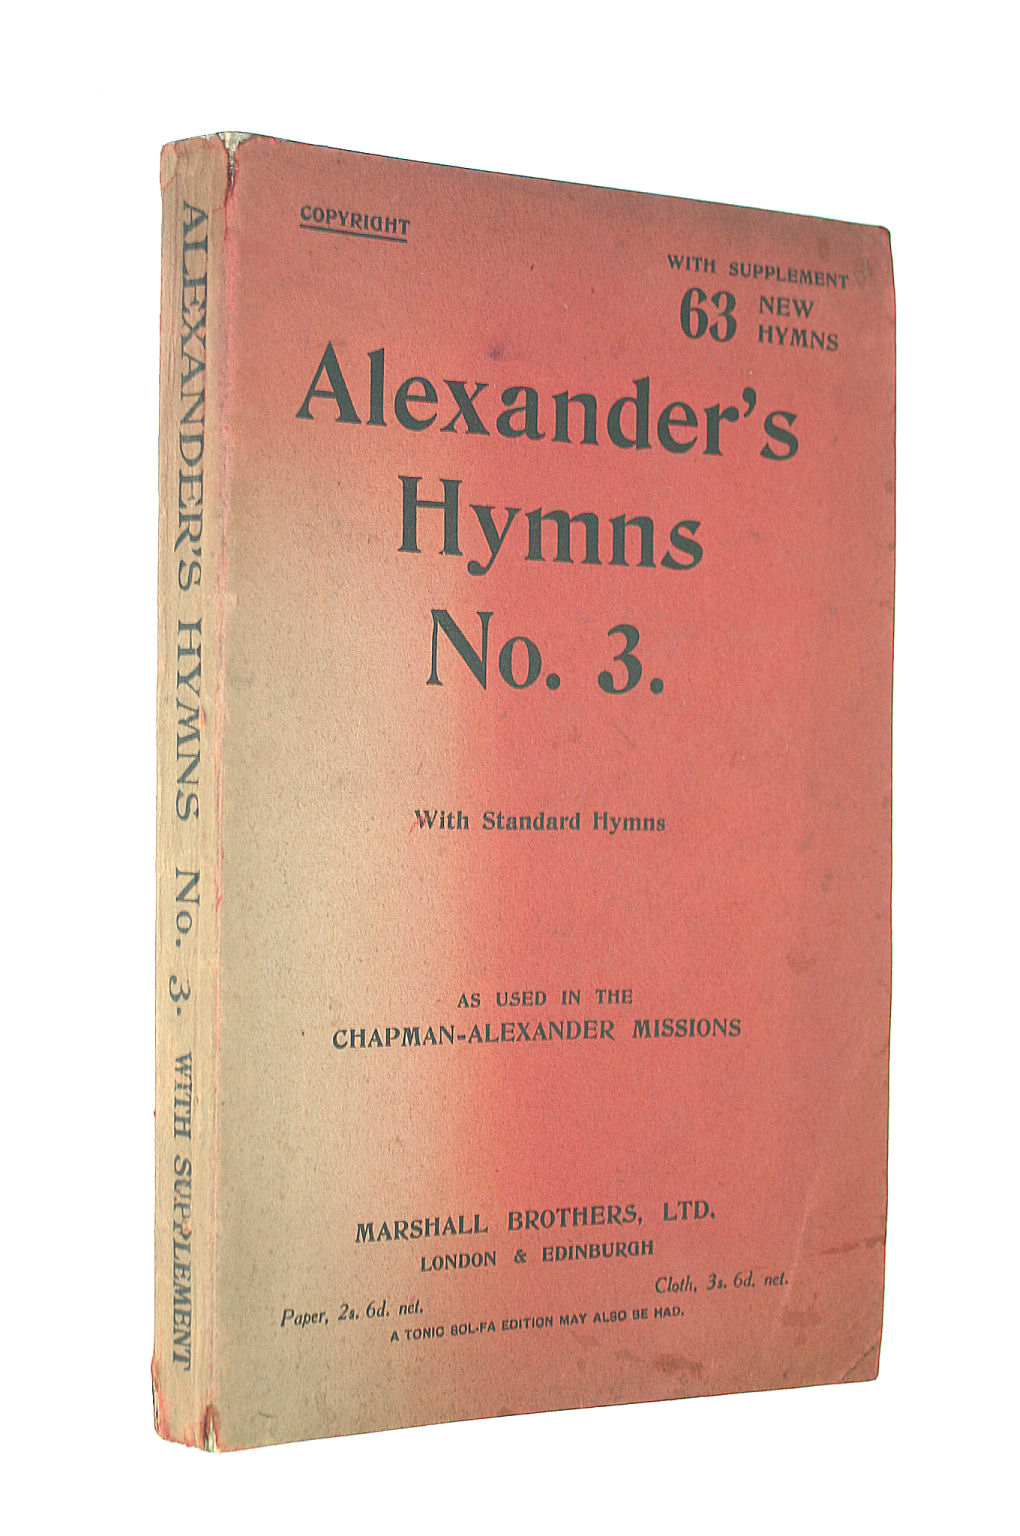 Image for With Supplement 63 New Hymns: Alexander's Hymns No.3 With Standard Hymns As Usen In The Capman Alexander Missions